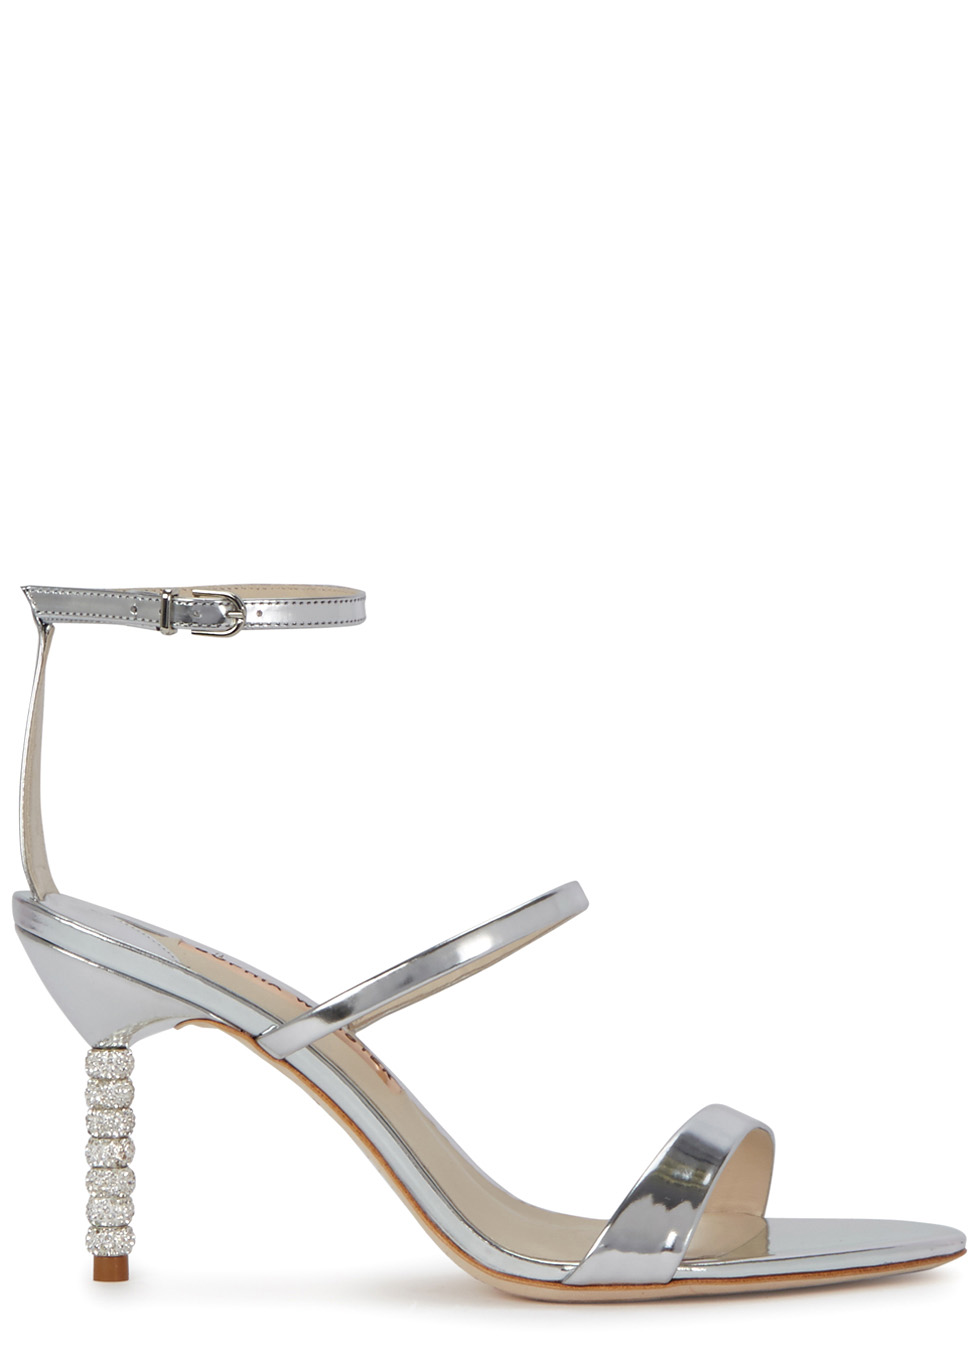 Rosalind 85 silver leather sandals